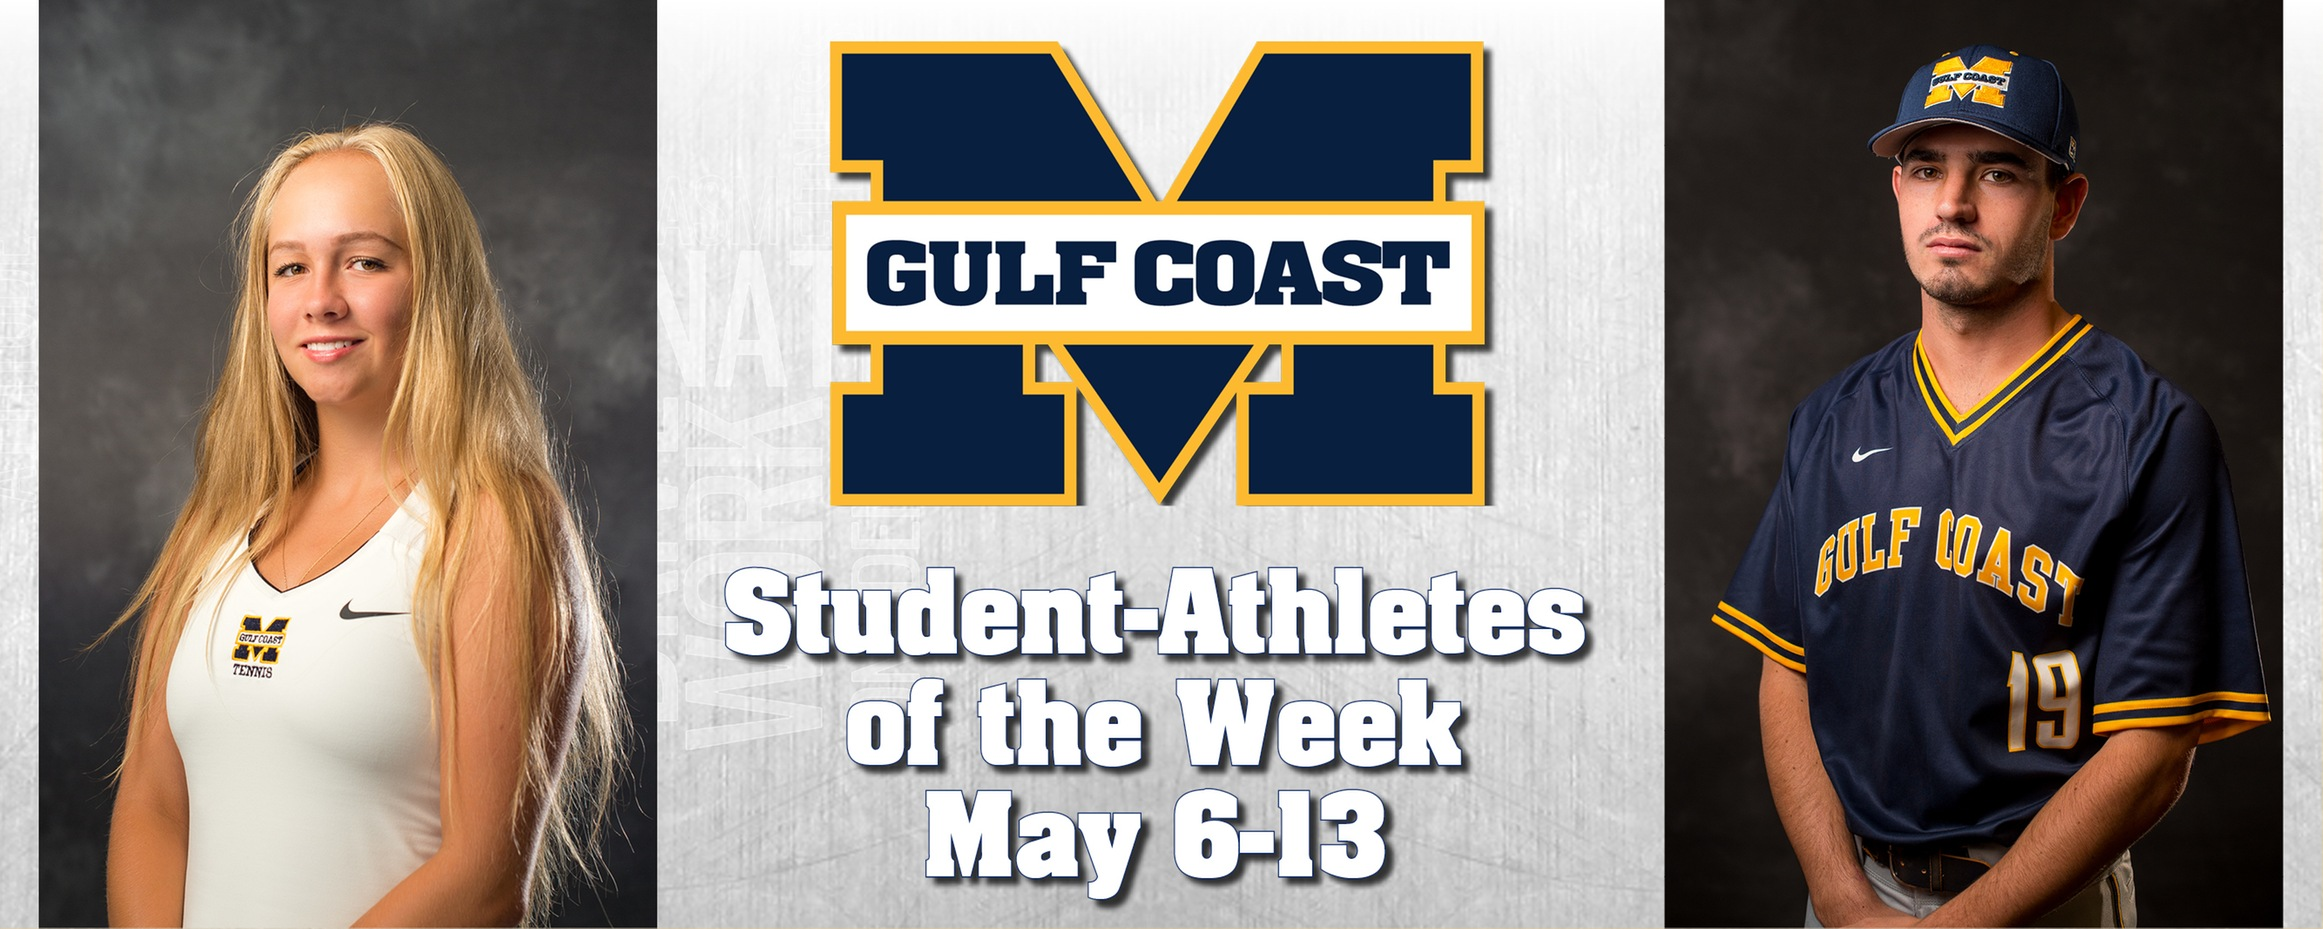 Lopareva, Fagan named MGCCC Student-Athletes of the Week